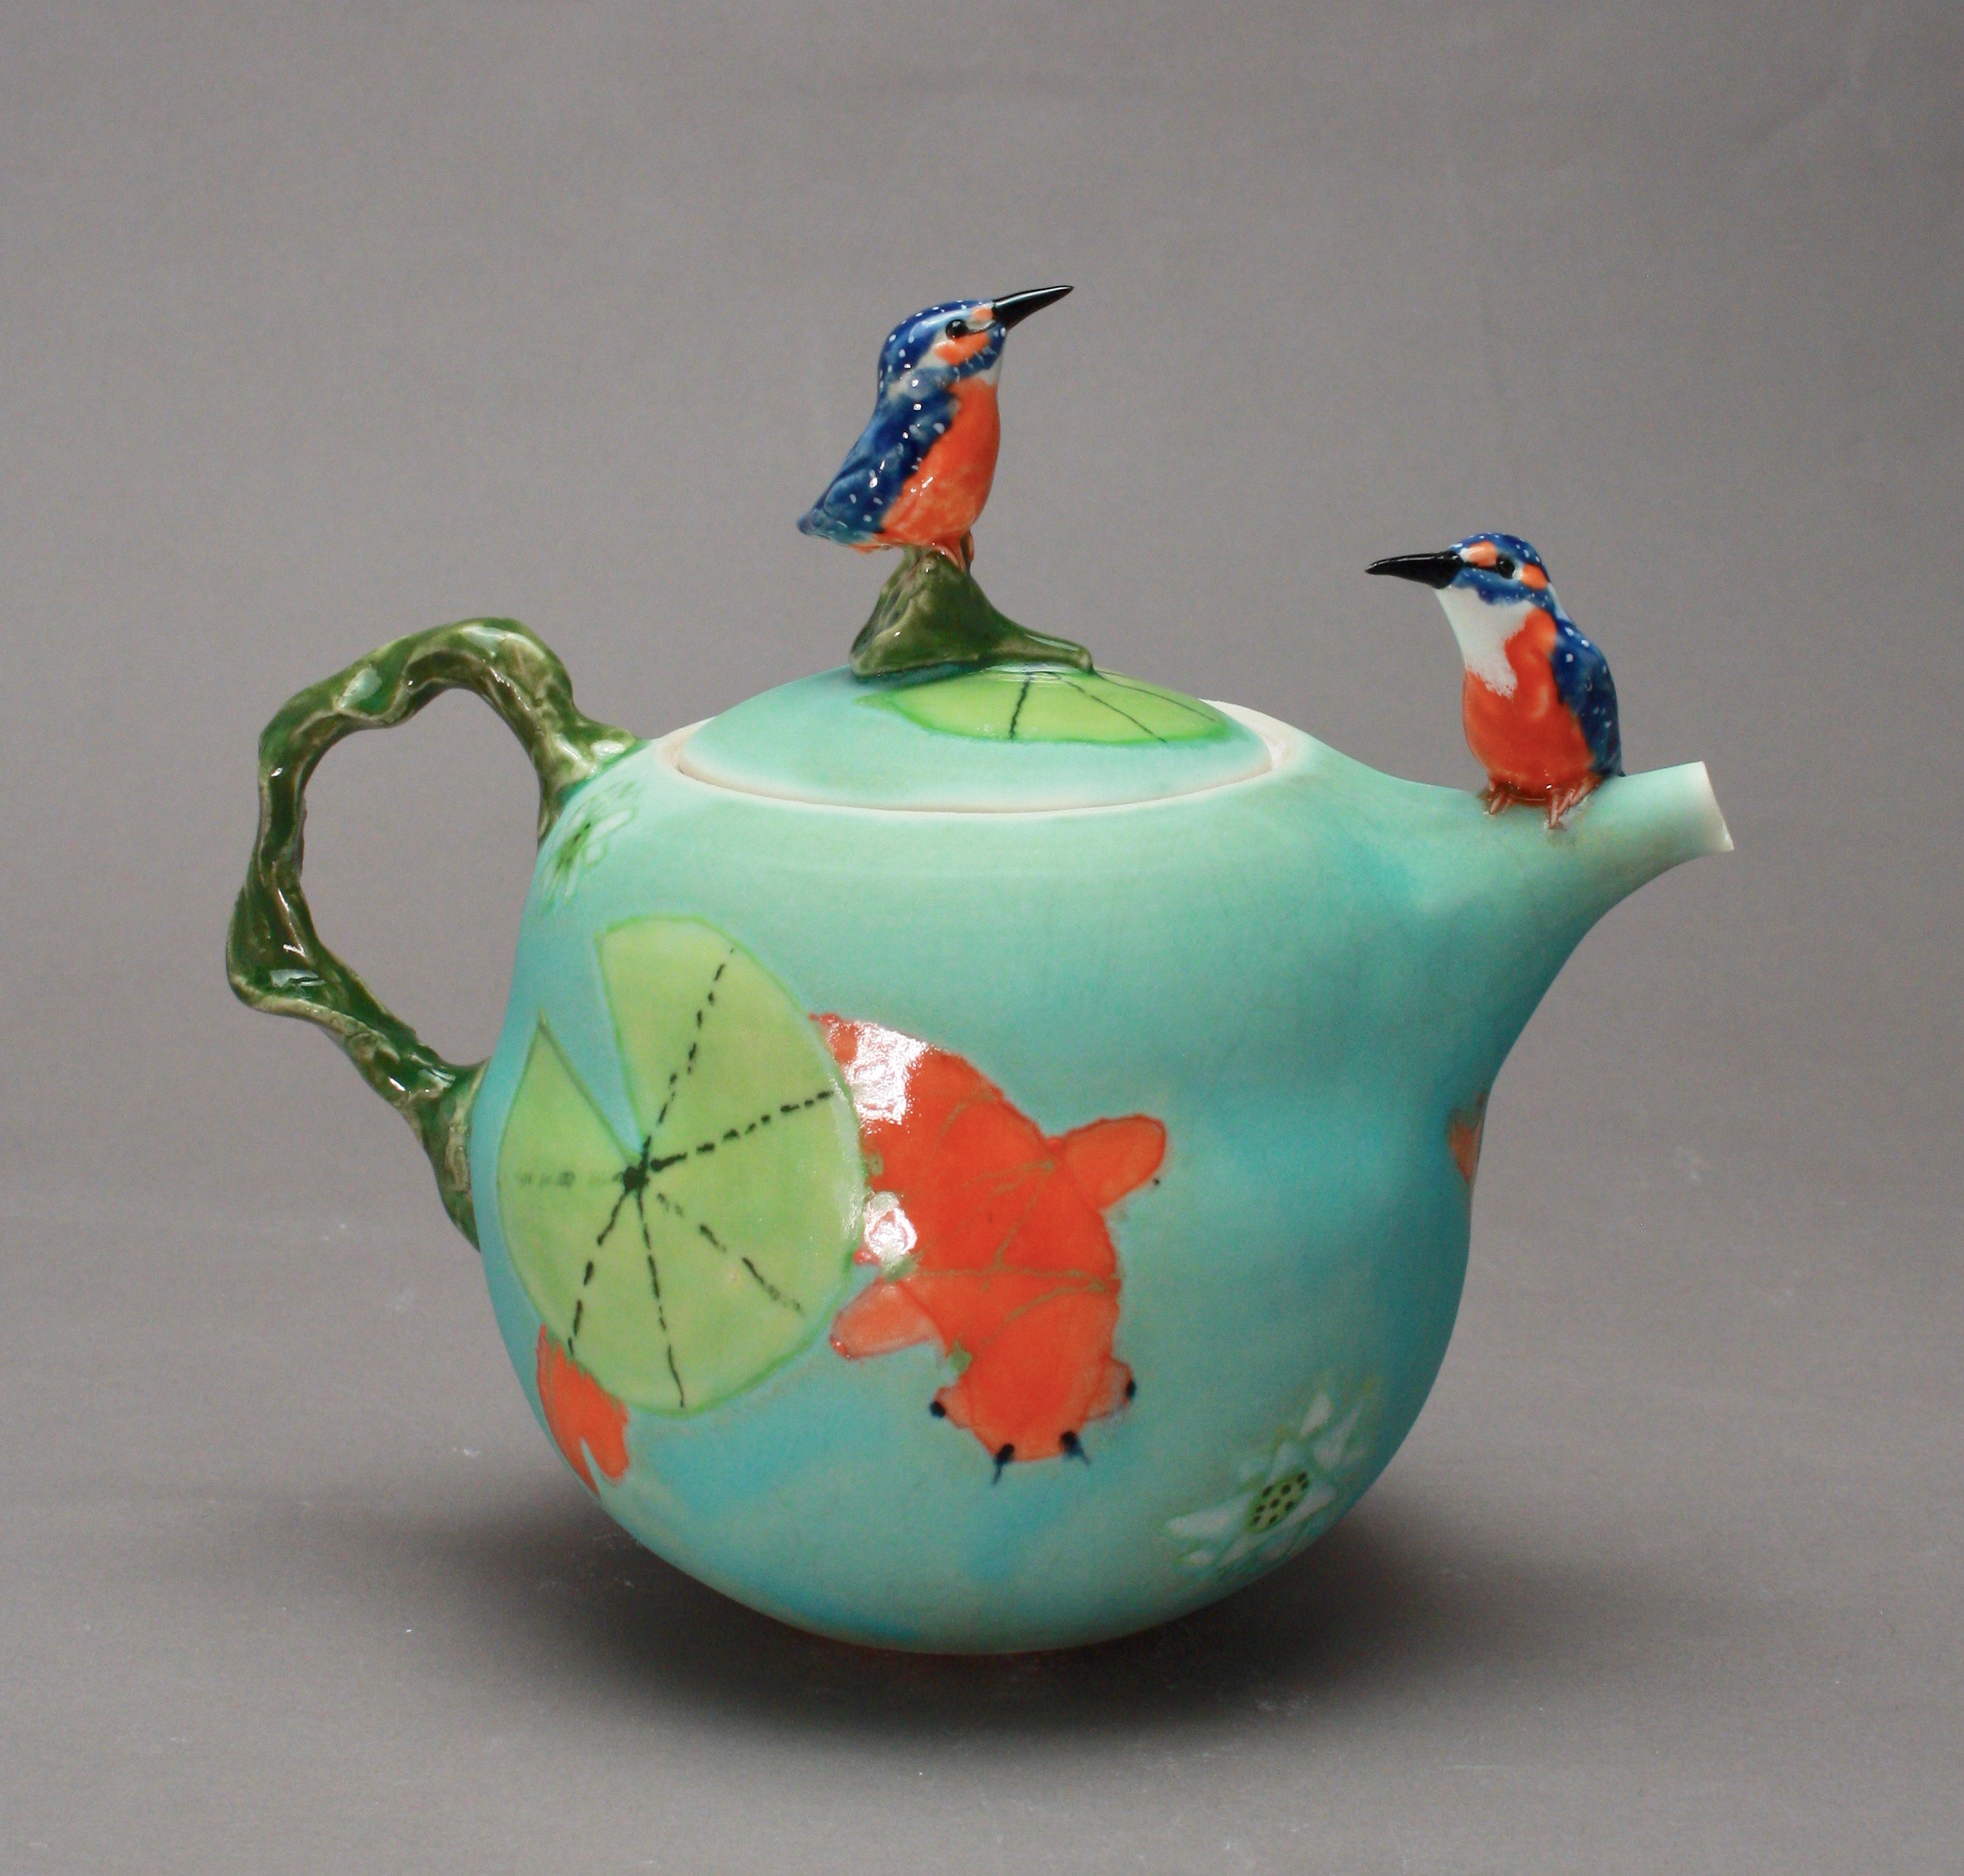 2BT- 06  | Koi Pond Teapot with Pygmy Kingfishers ($325)